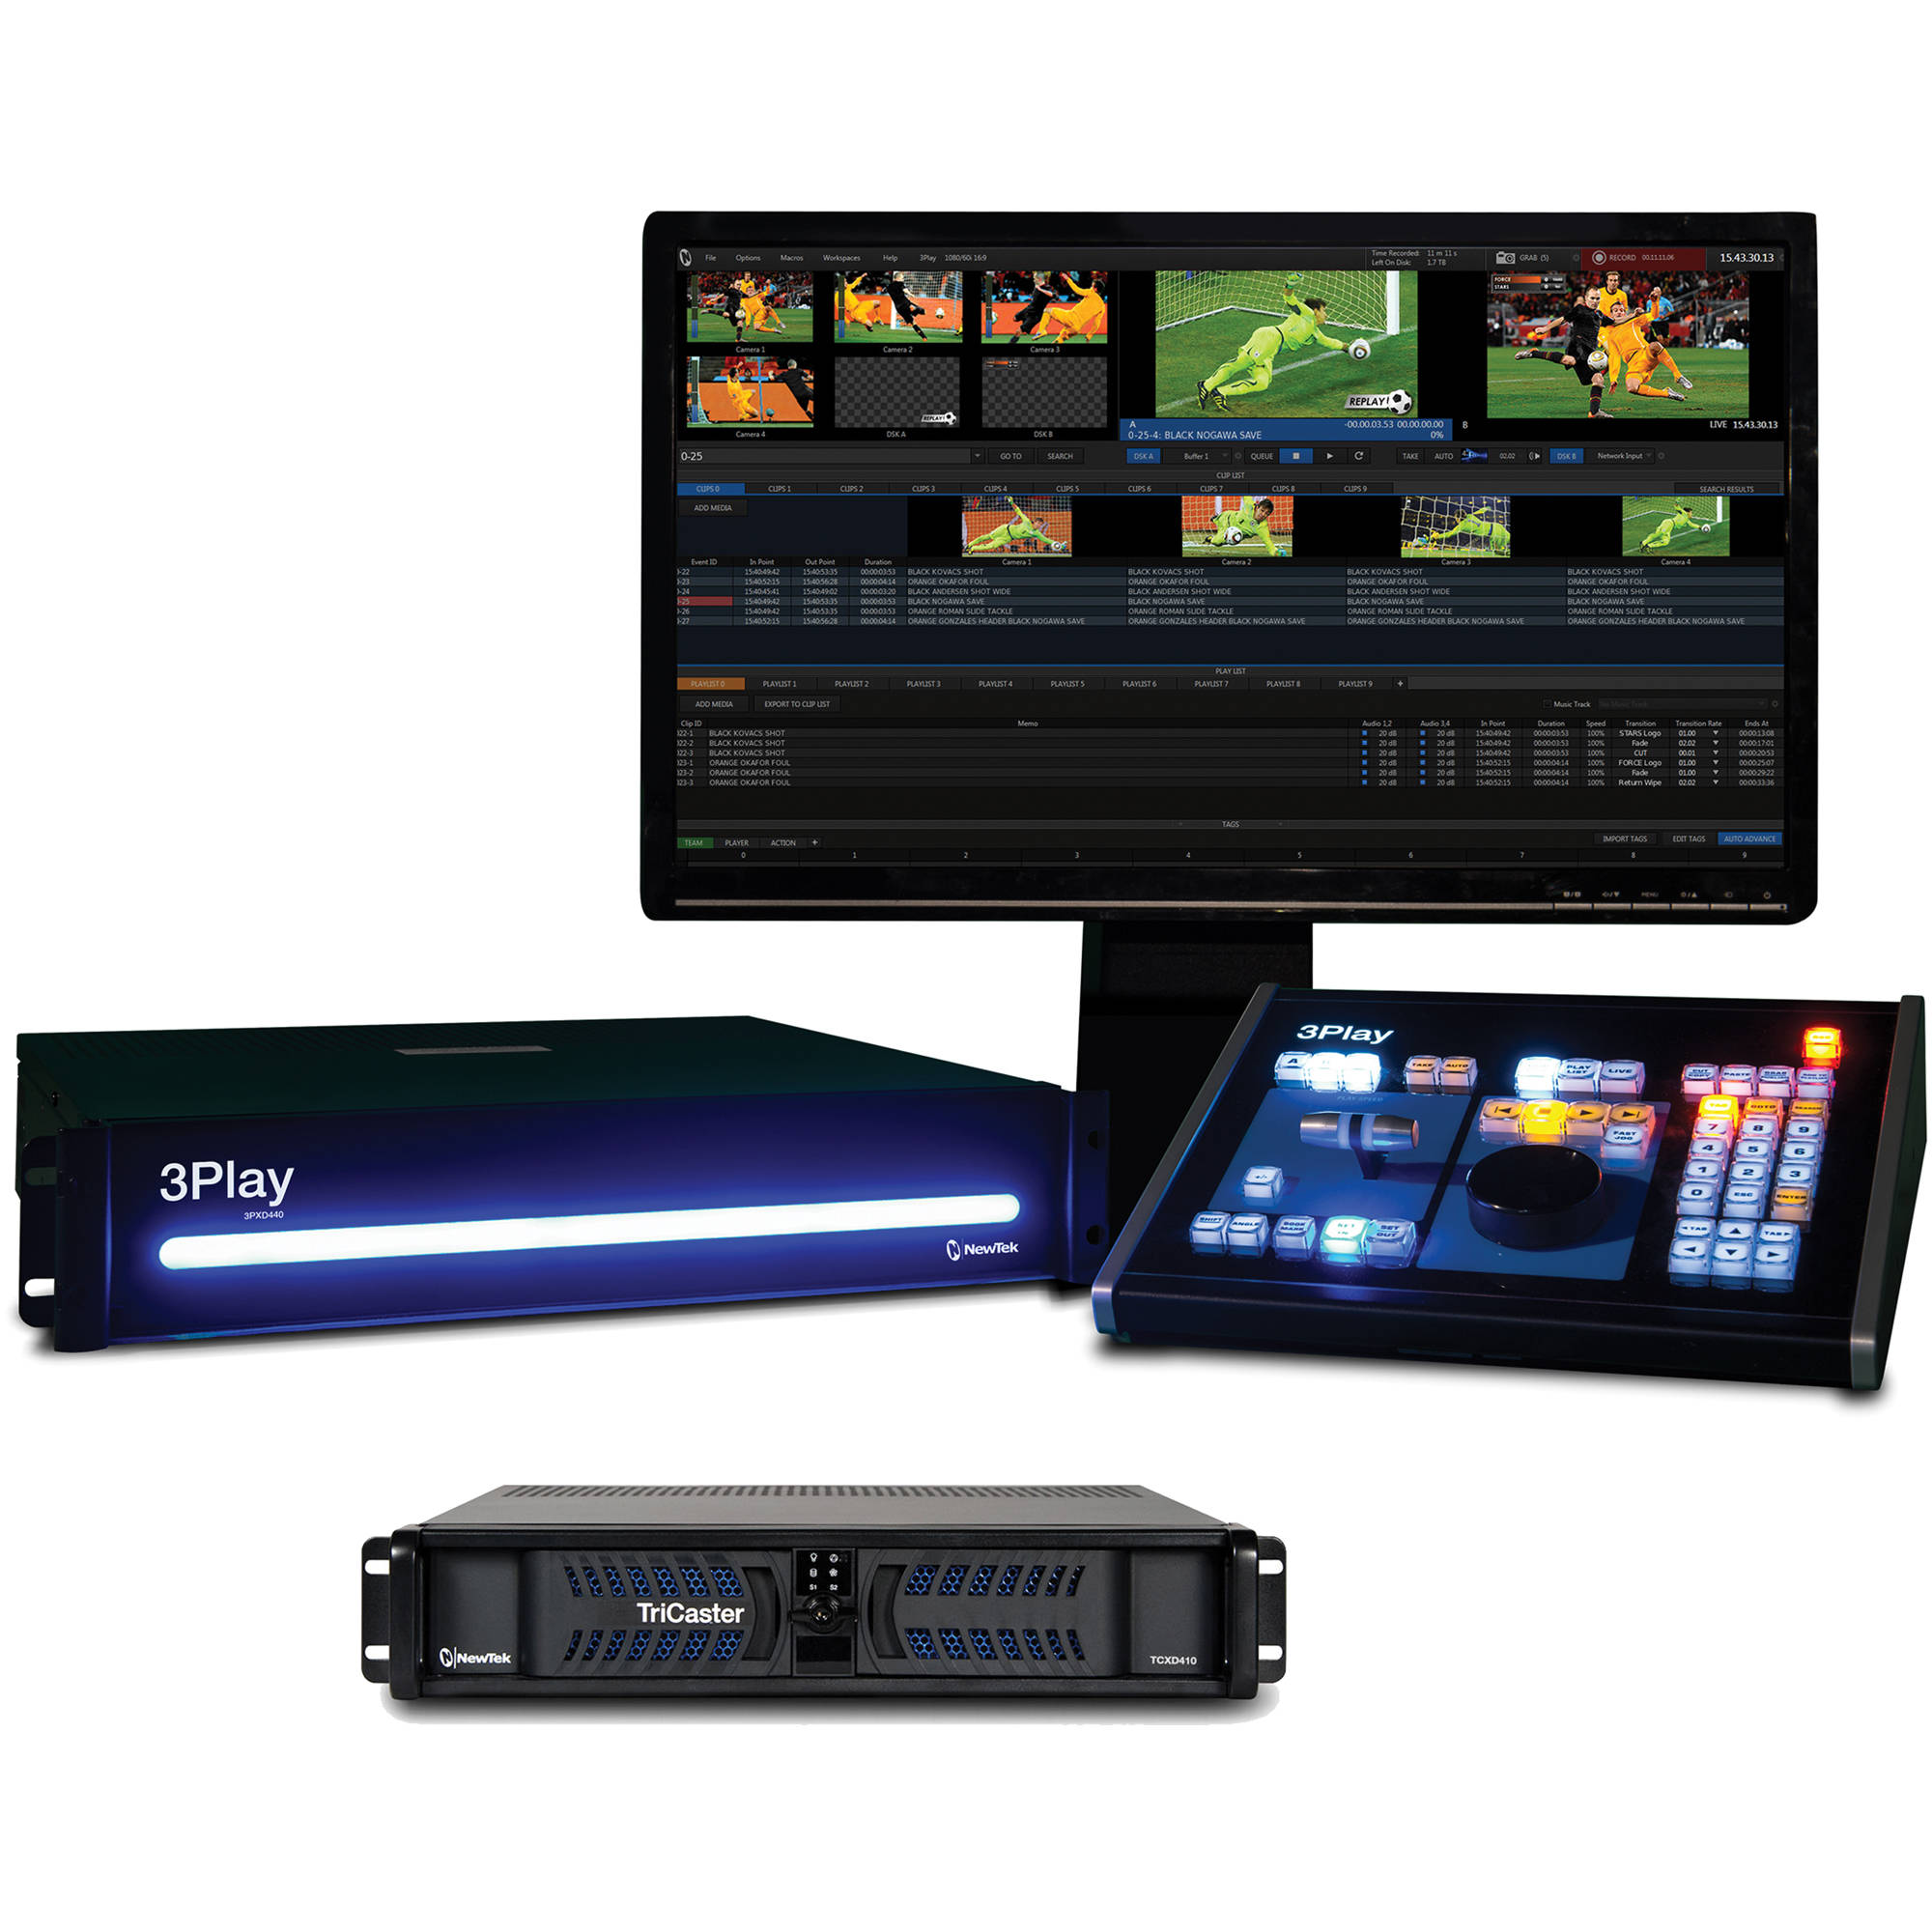 NewTek Live Sports 410 Solution: TriCaster 410 FG-000835-R001